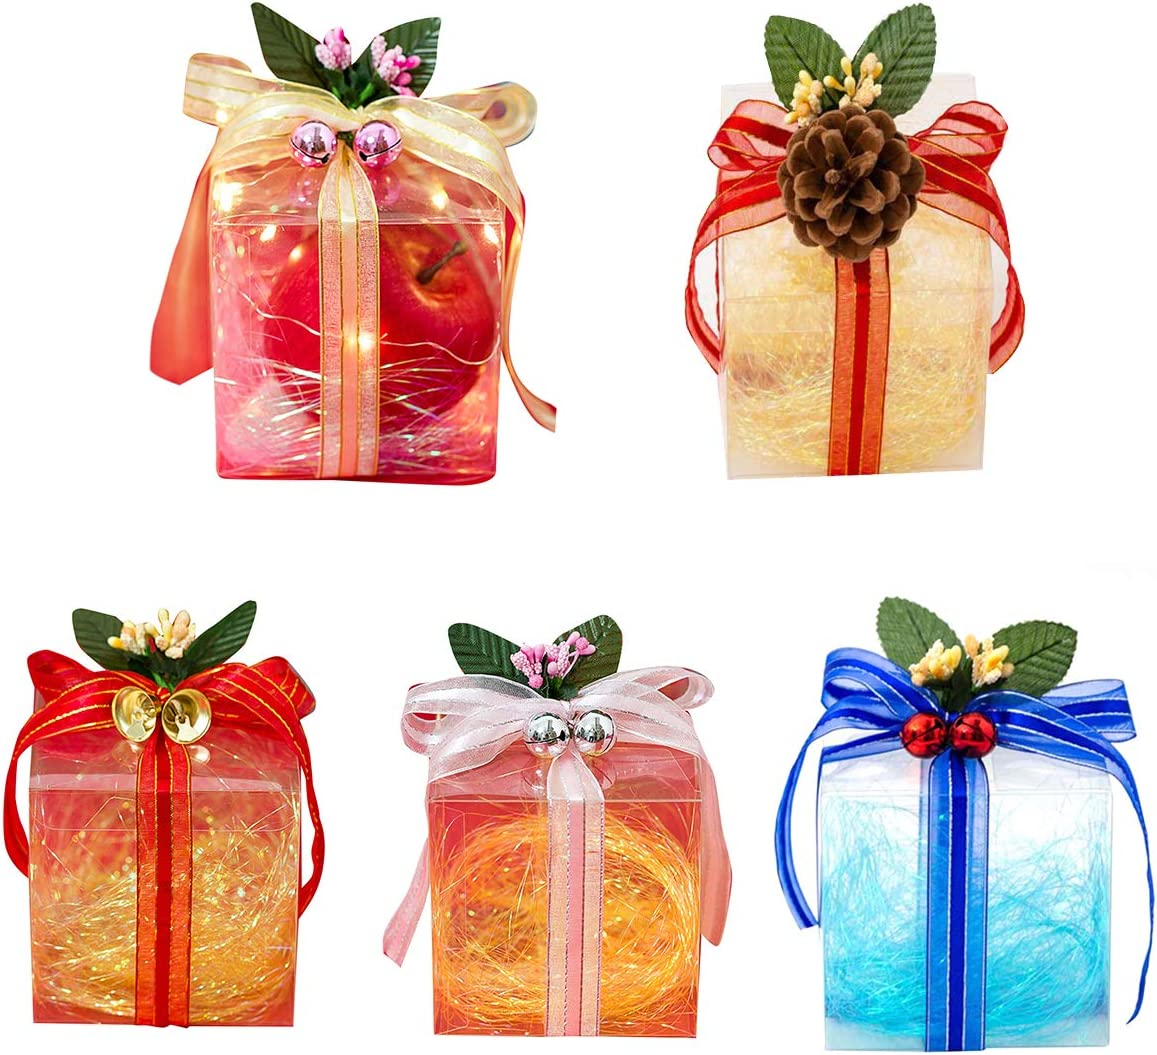 10 Set Treat Boxes with Ribbons and Decorations, Goodie Bag Party Favor Boxes Luxury Chocolate Candy Apple Case Candy Box with Shred Filler for Valentine's Day Wedding Festival